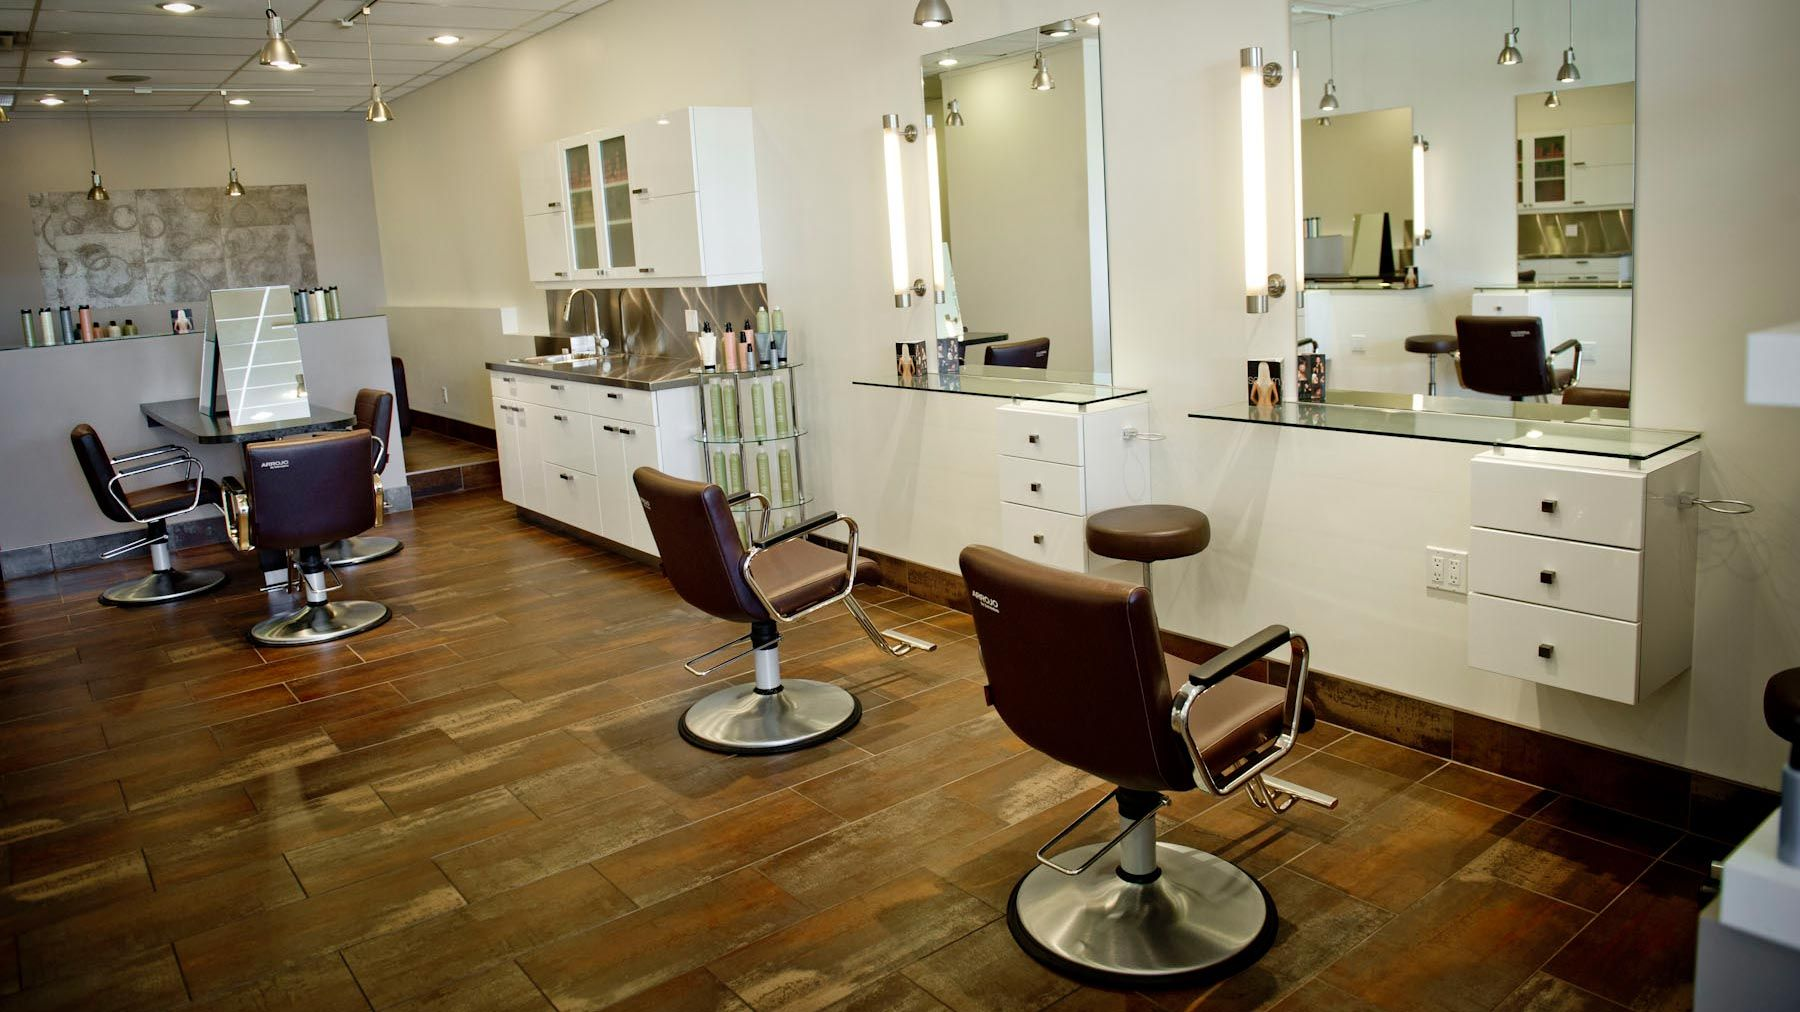 Modern Hair Salon Decorating Ideas  Hair salon decor, Salon decor